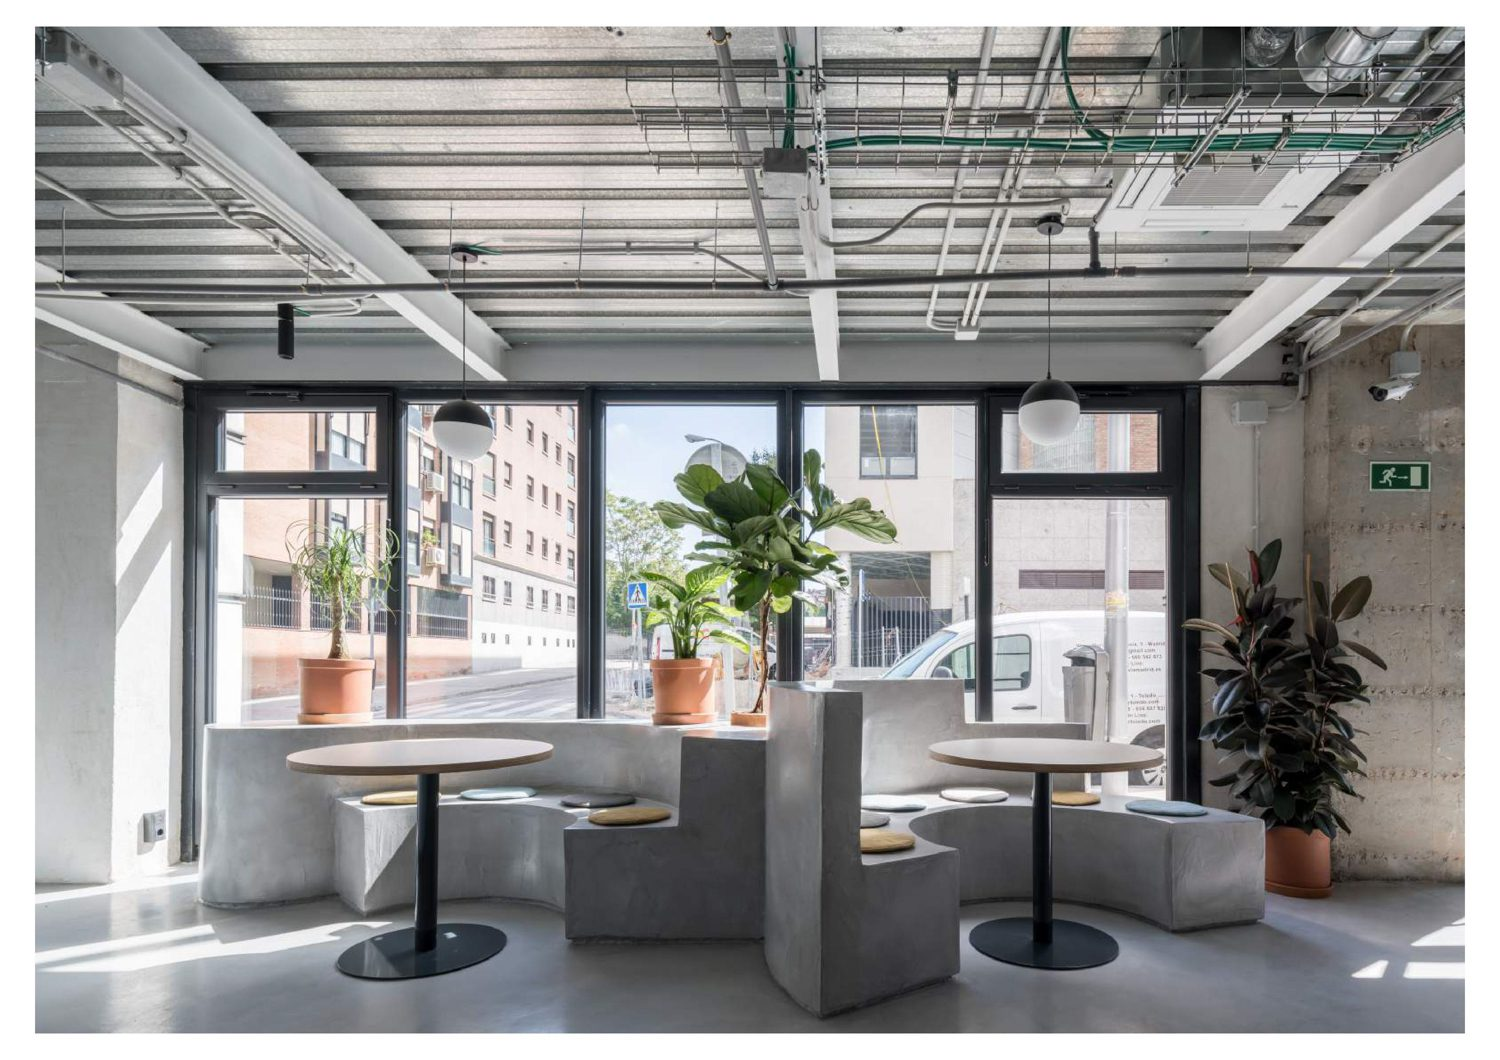 Sunlight floods the kitchen area's mix of concrete and greenery.